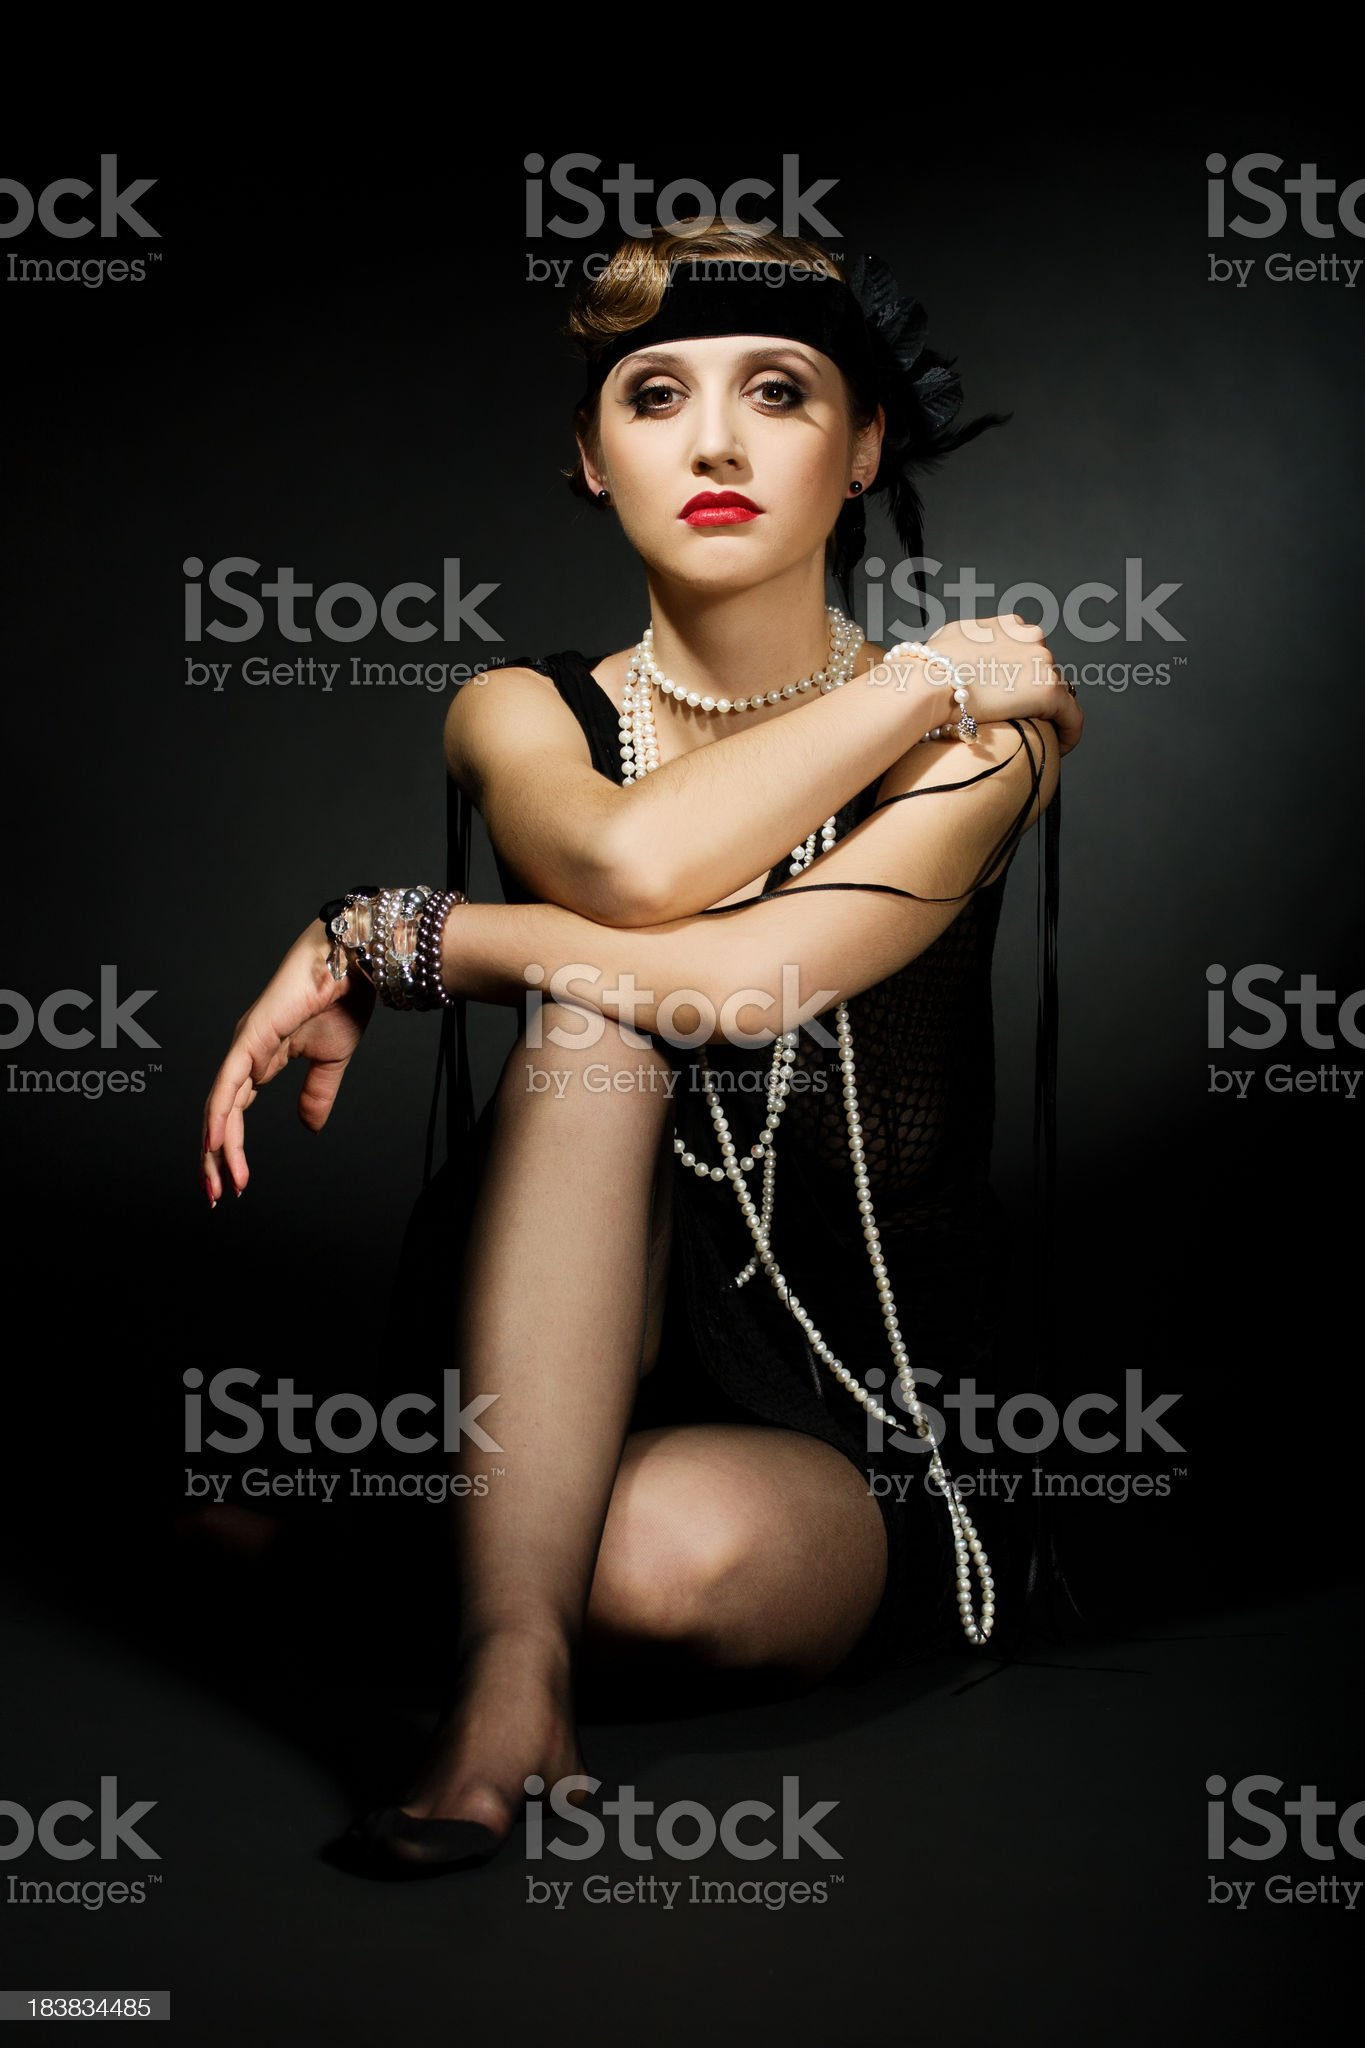 Retro Woman royalty-free stock photo